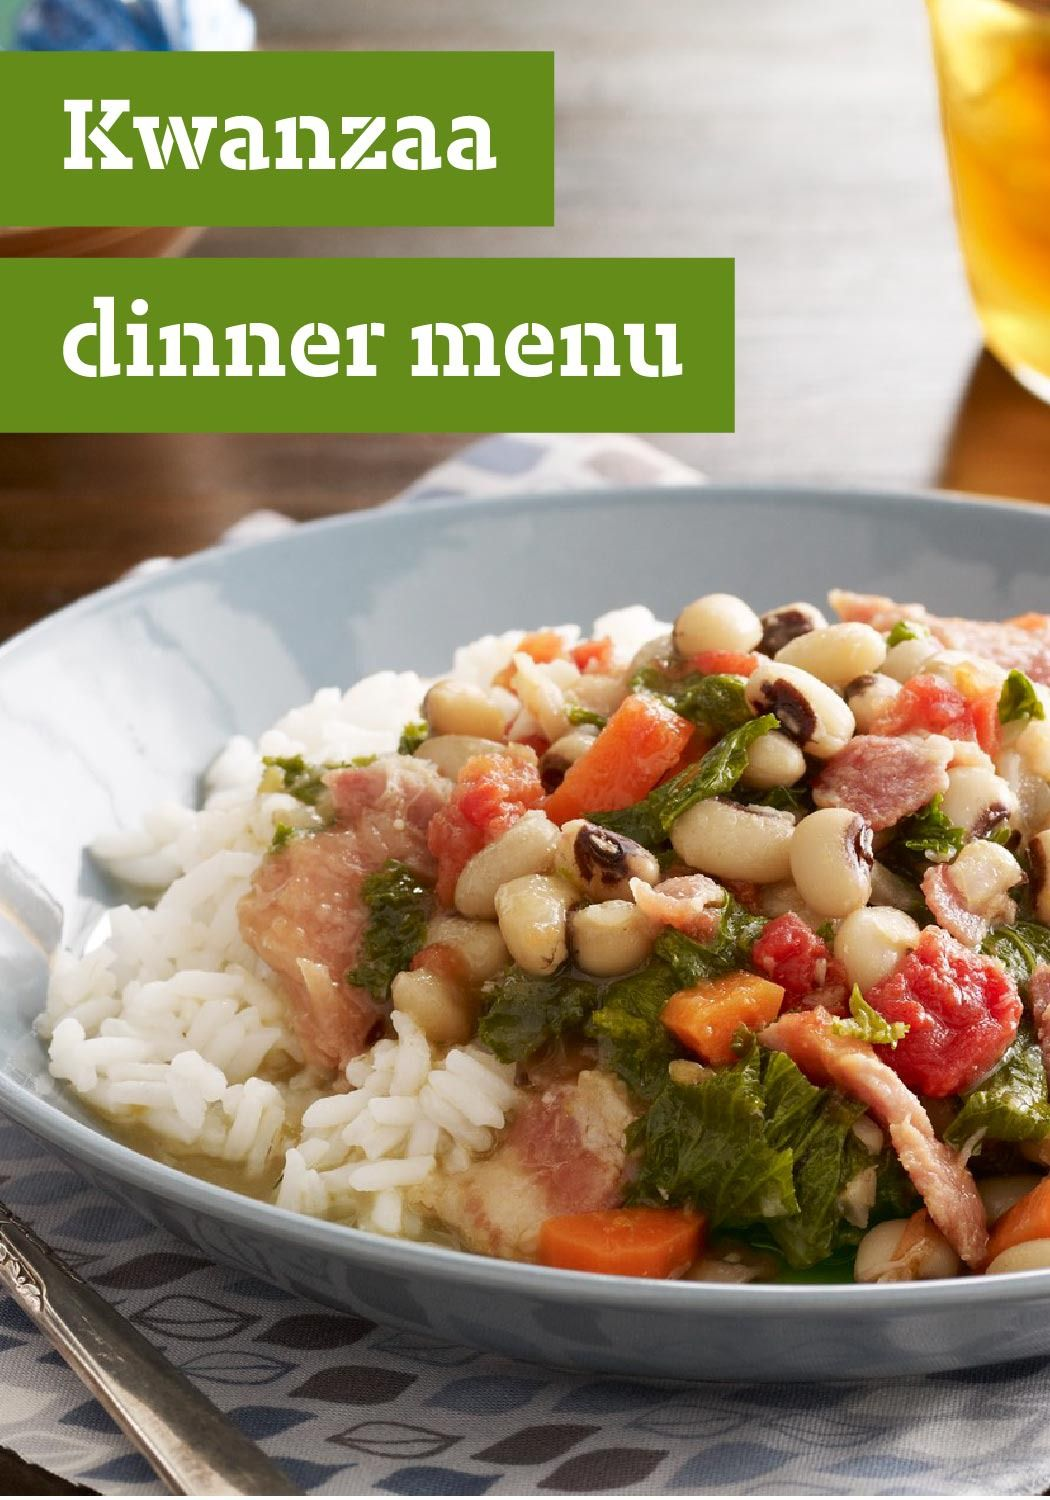 Kwanzaa dinner menu let us simplify your preparation of let us simplify your preparation of traditional african american african or caribbean dishes with our handy kwanzaa dinner menu forumfinder Choice Image